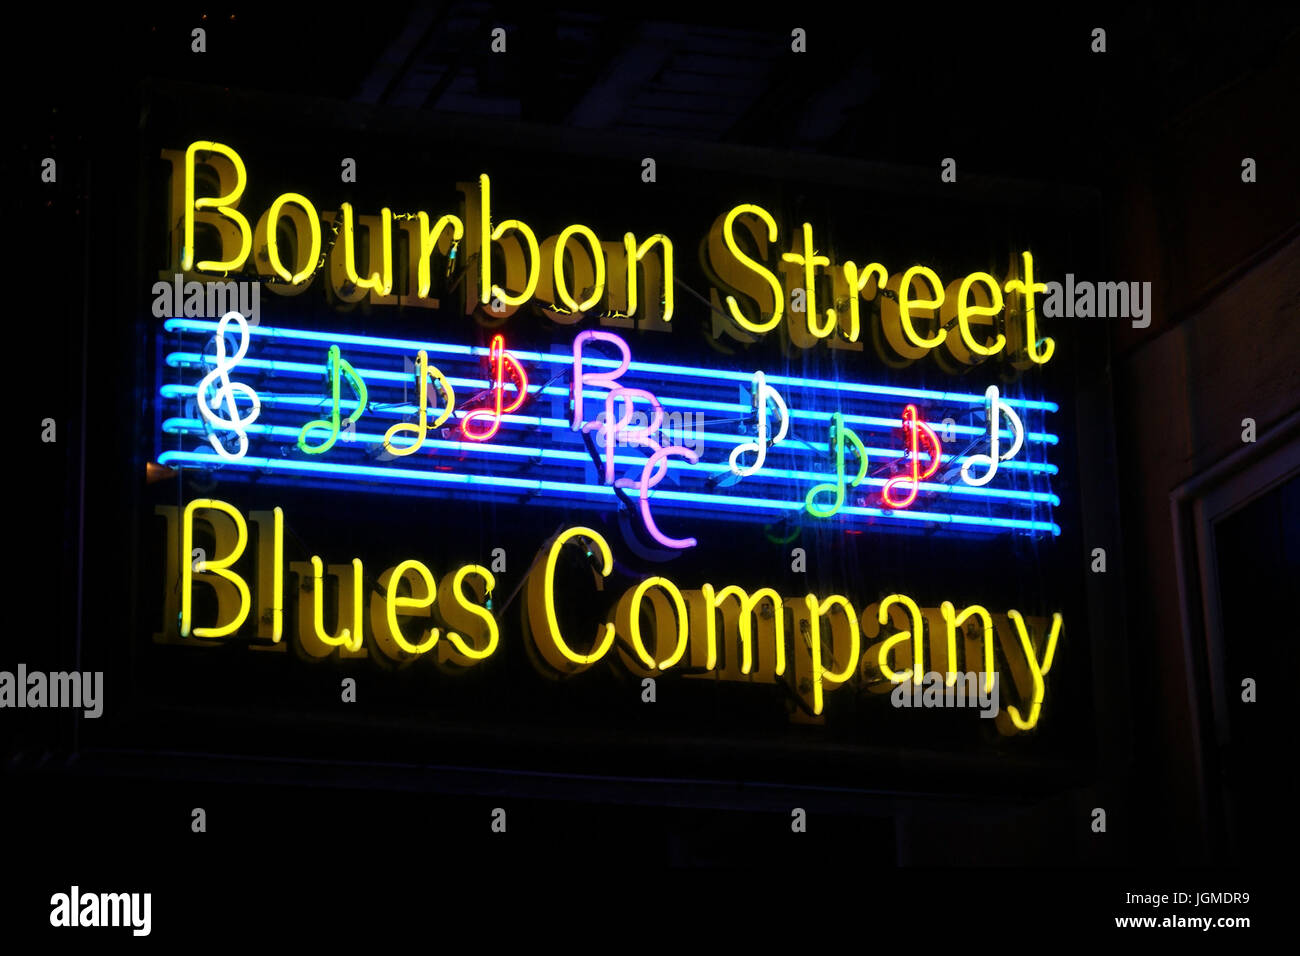 New Orleans - Neon lights, New Orleans - Leuchtreklame - Stock Image